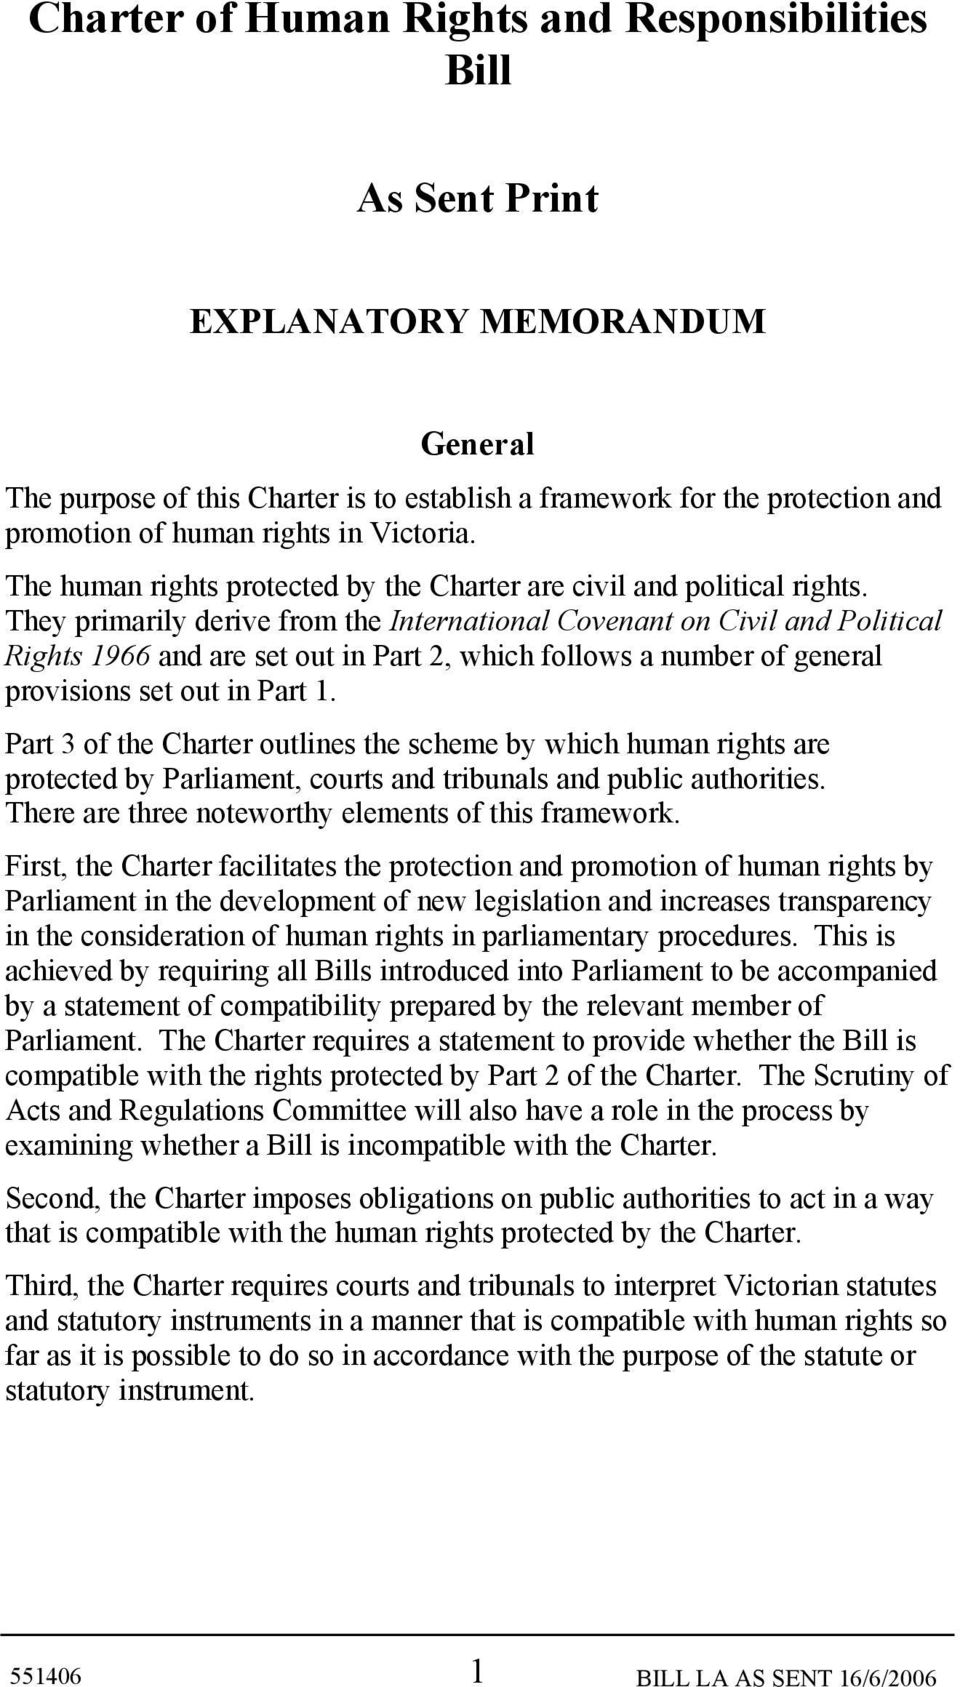 They primarily derive from the International Covenant on Civil and Political Rights 1966 and are set out in Part 2, which follows a number of general provisions set out in Part 1.